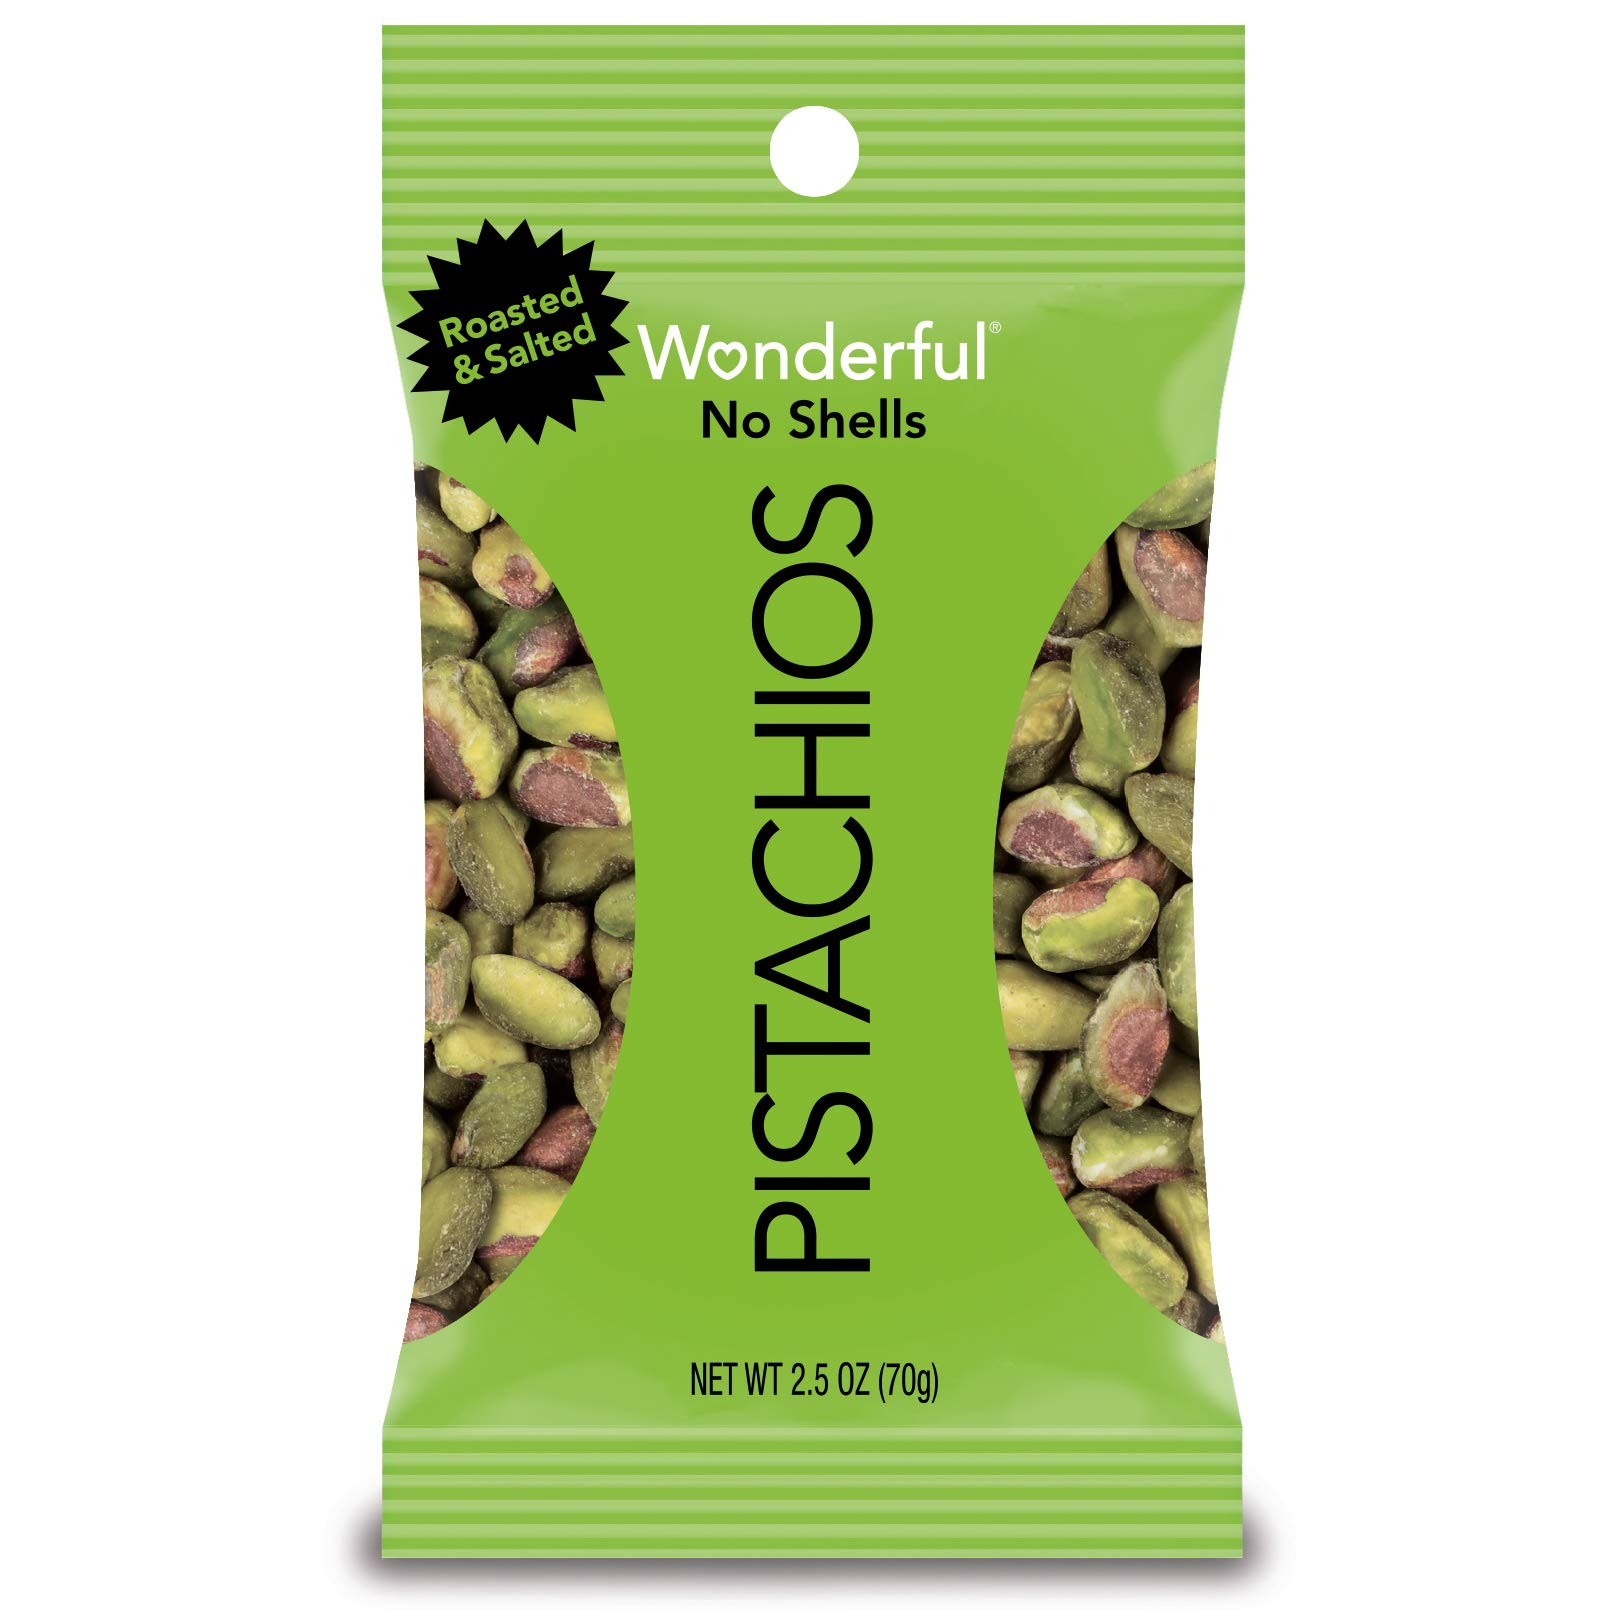 Wonderful Pistachios, No-Shell, Roasted and Salted, 2.5 Ounce Bag (Pack of 8) by Wonderful Pistachios & Almonds (Image #5)